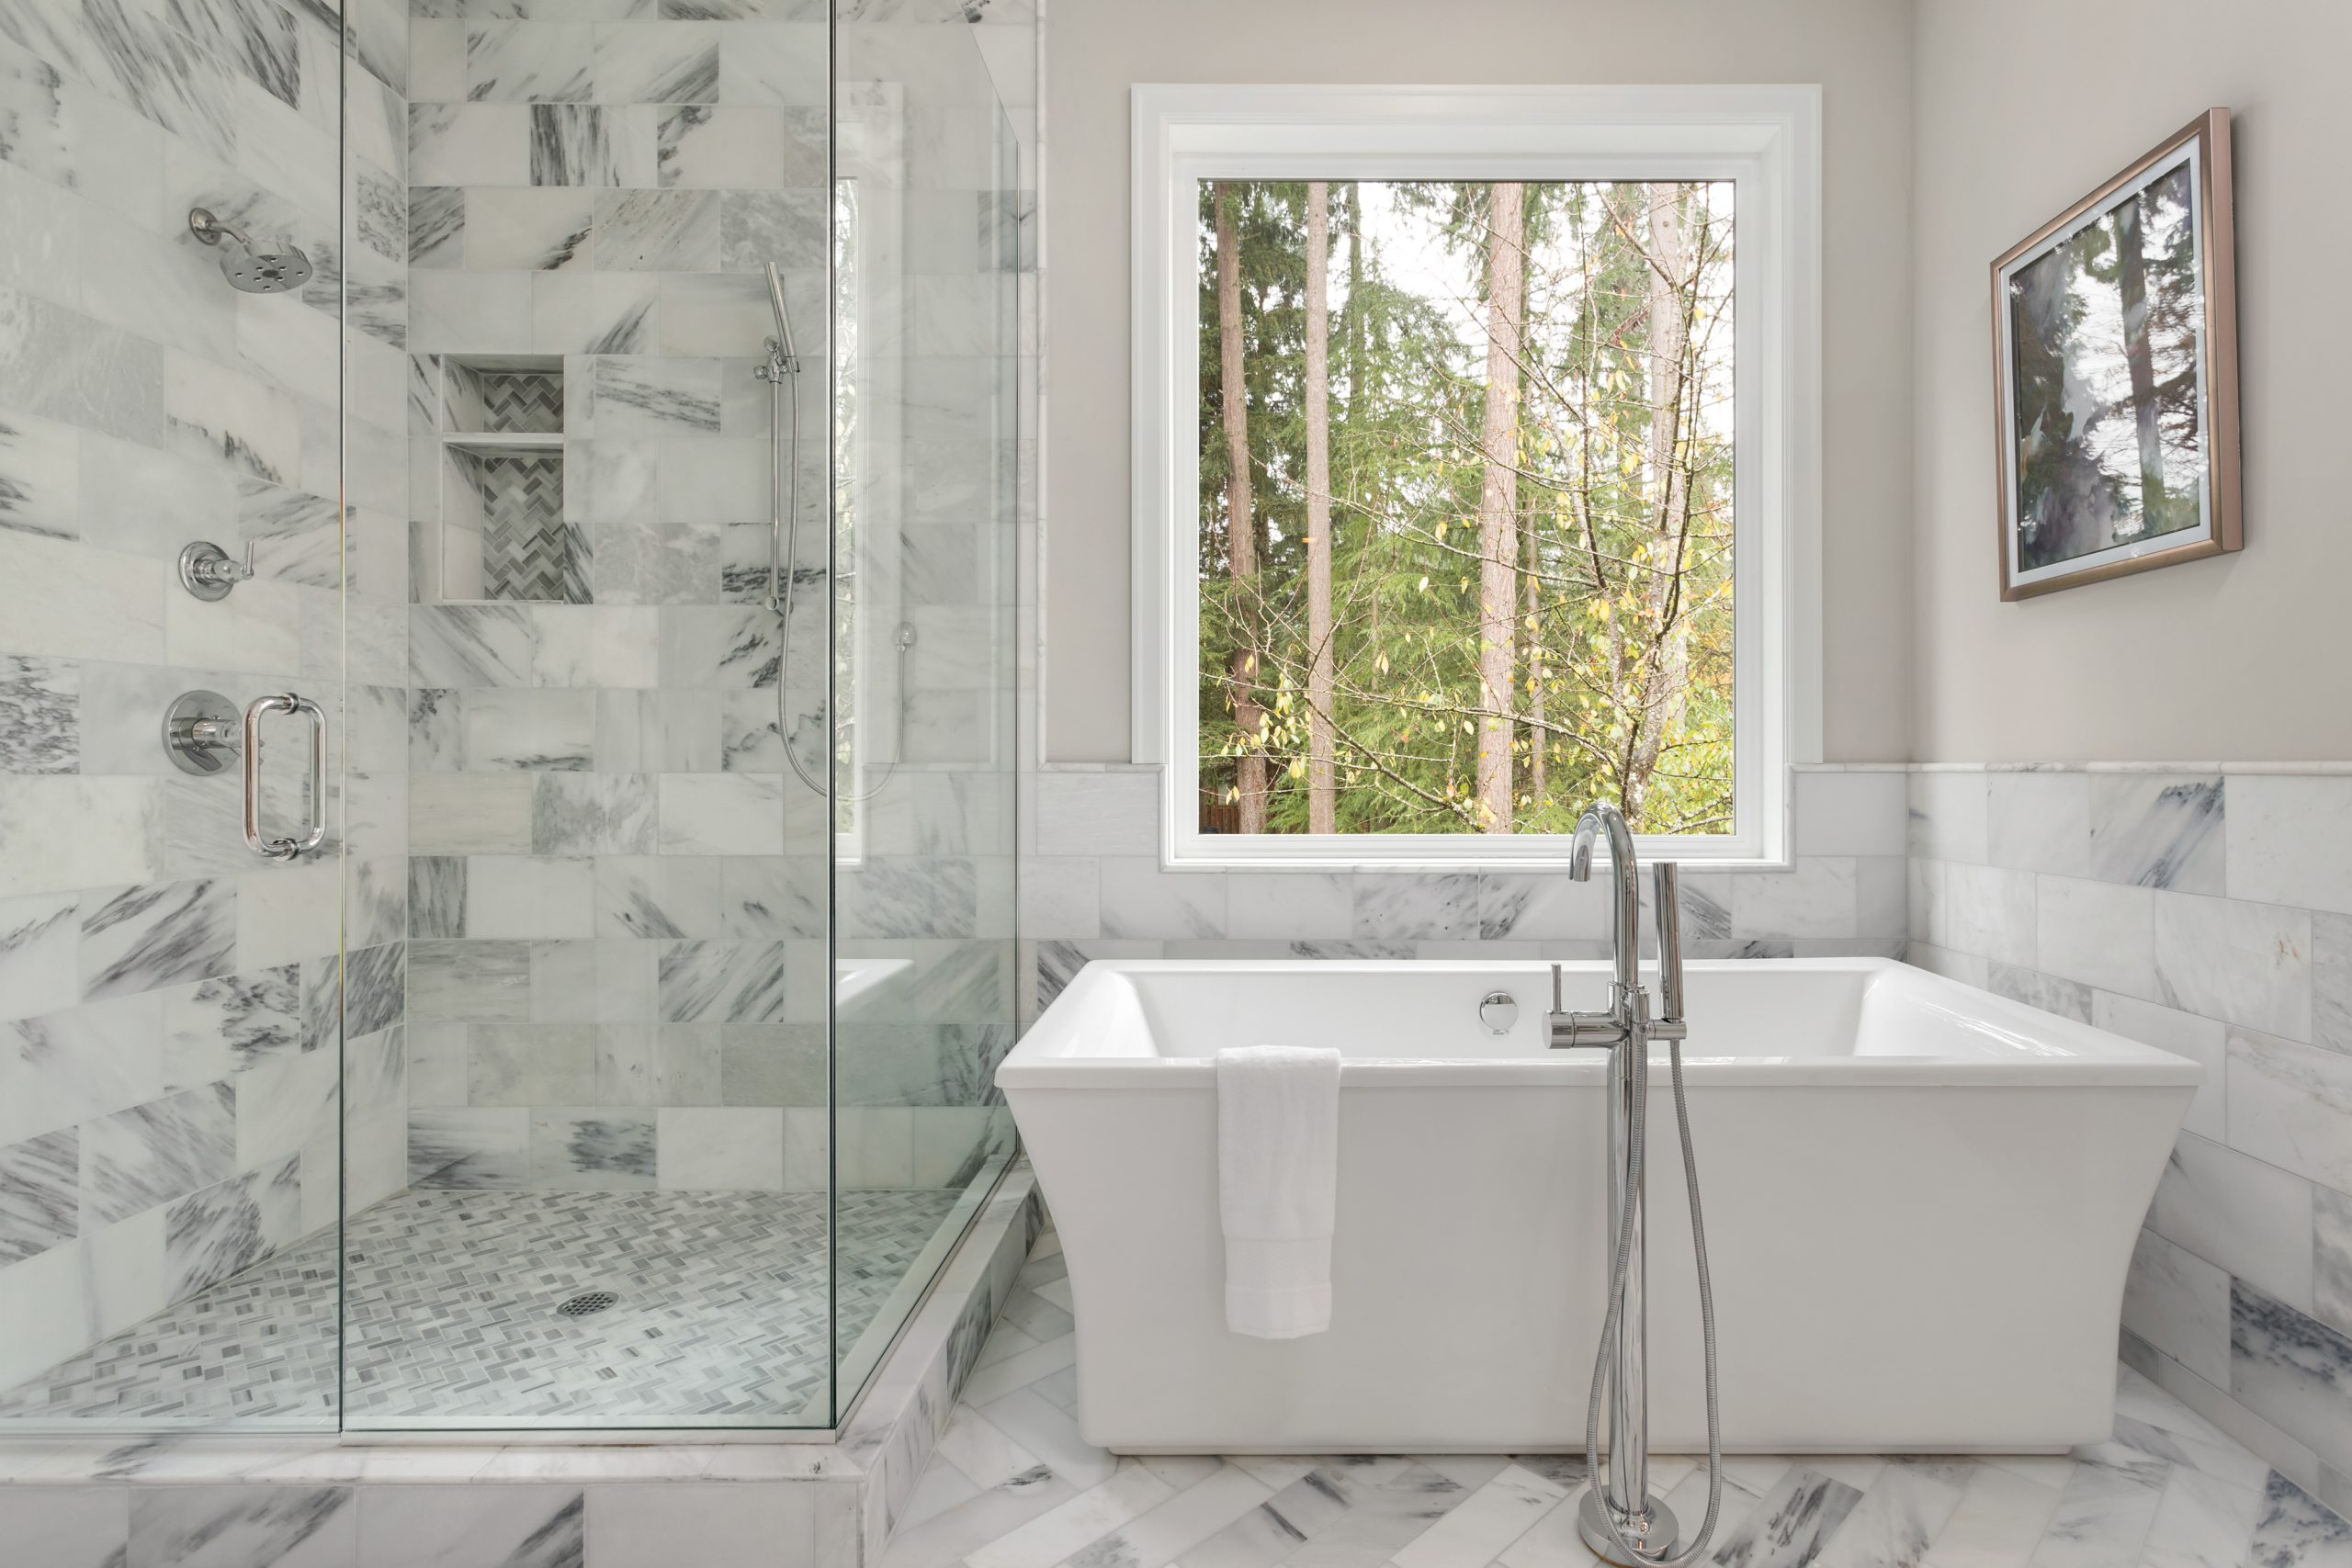 Bathroom with bathtub and shower in new luxury home with all glass shower. Large window allows for abundant natural light.